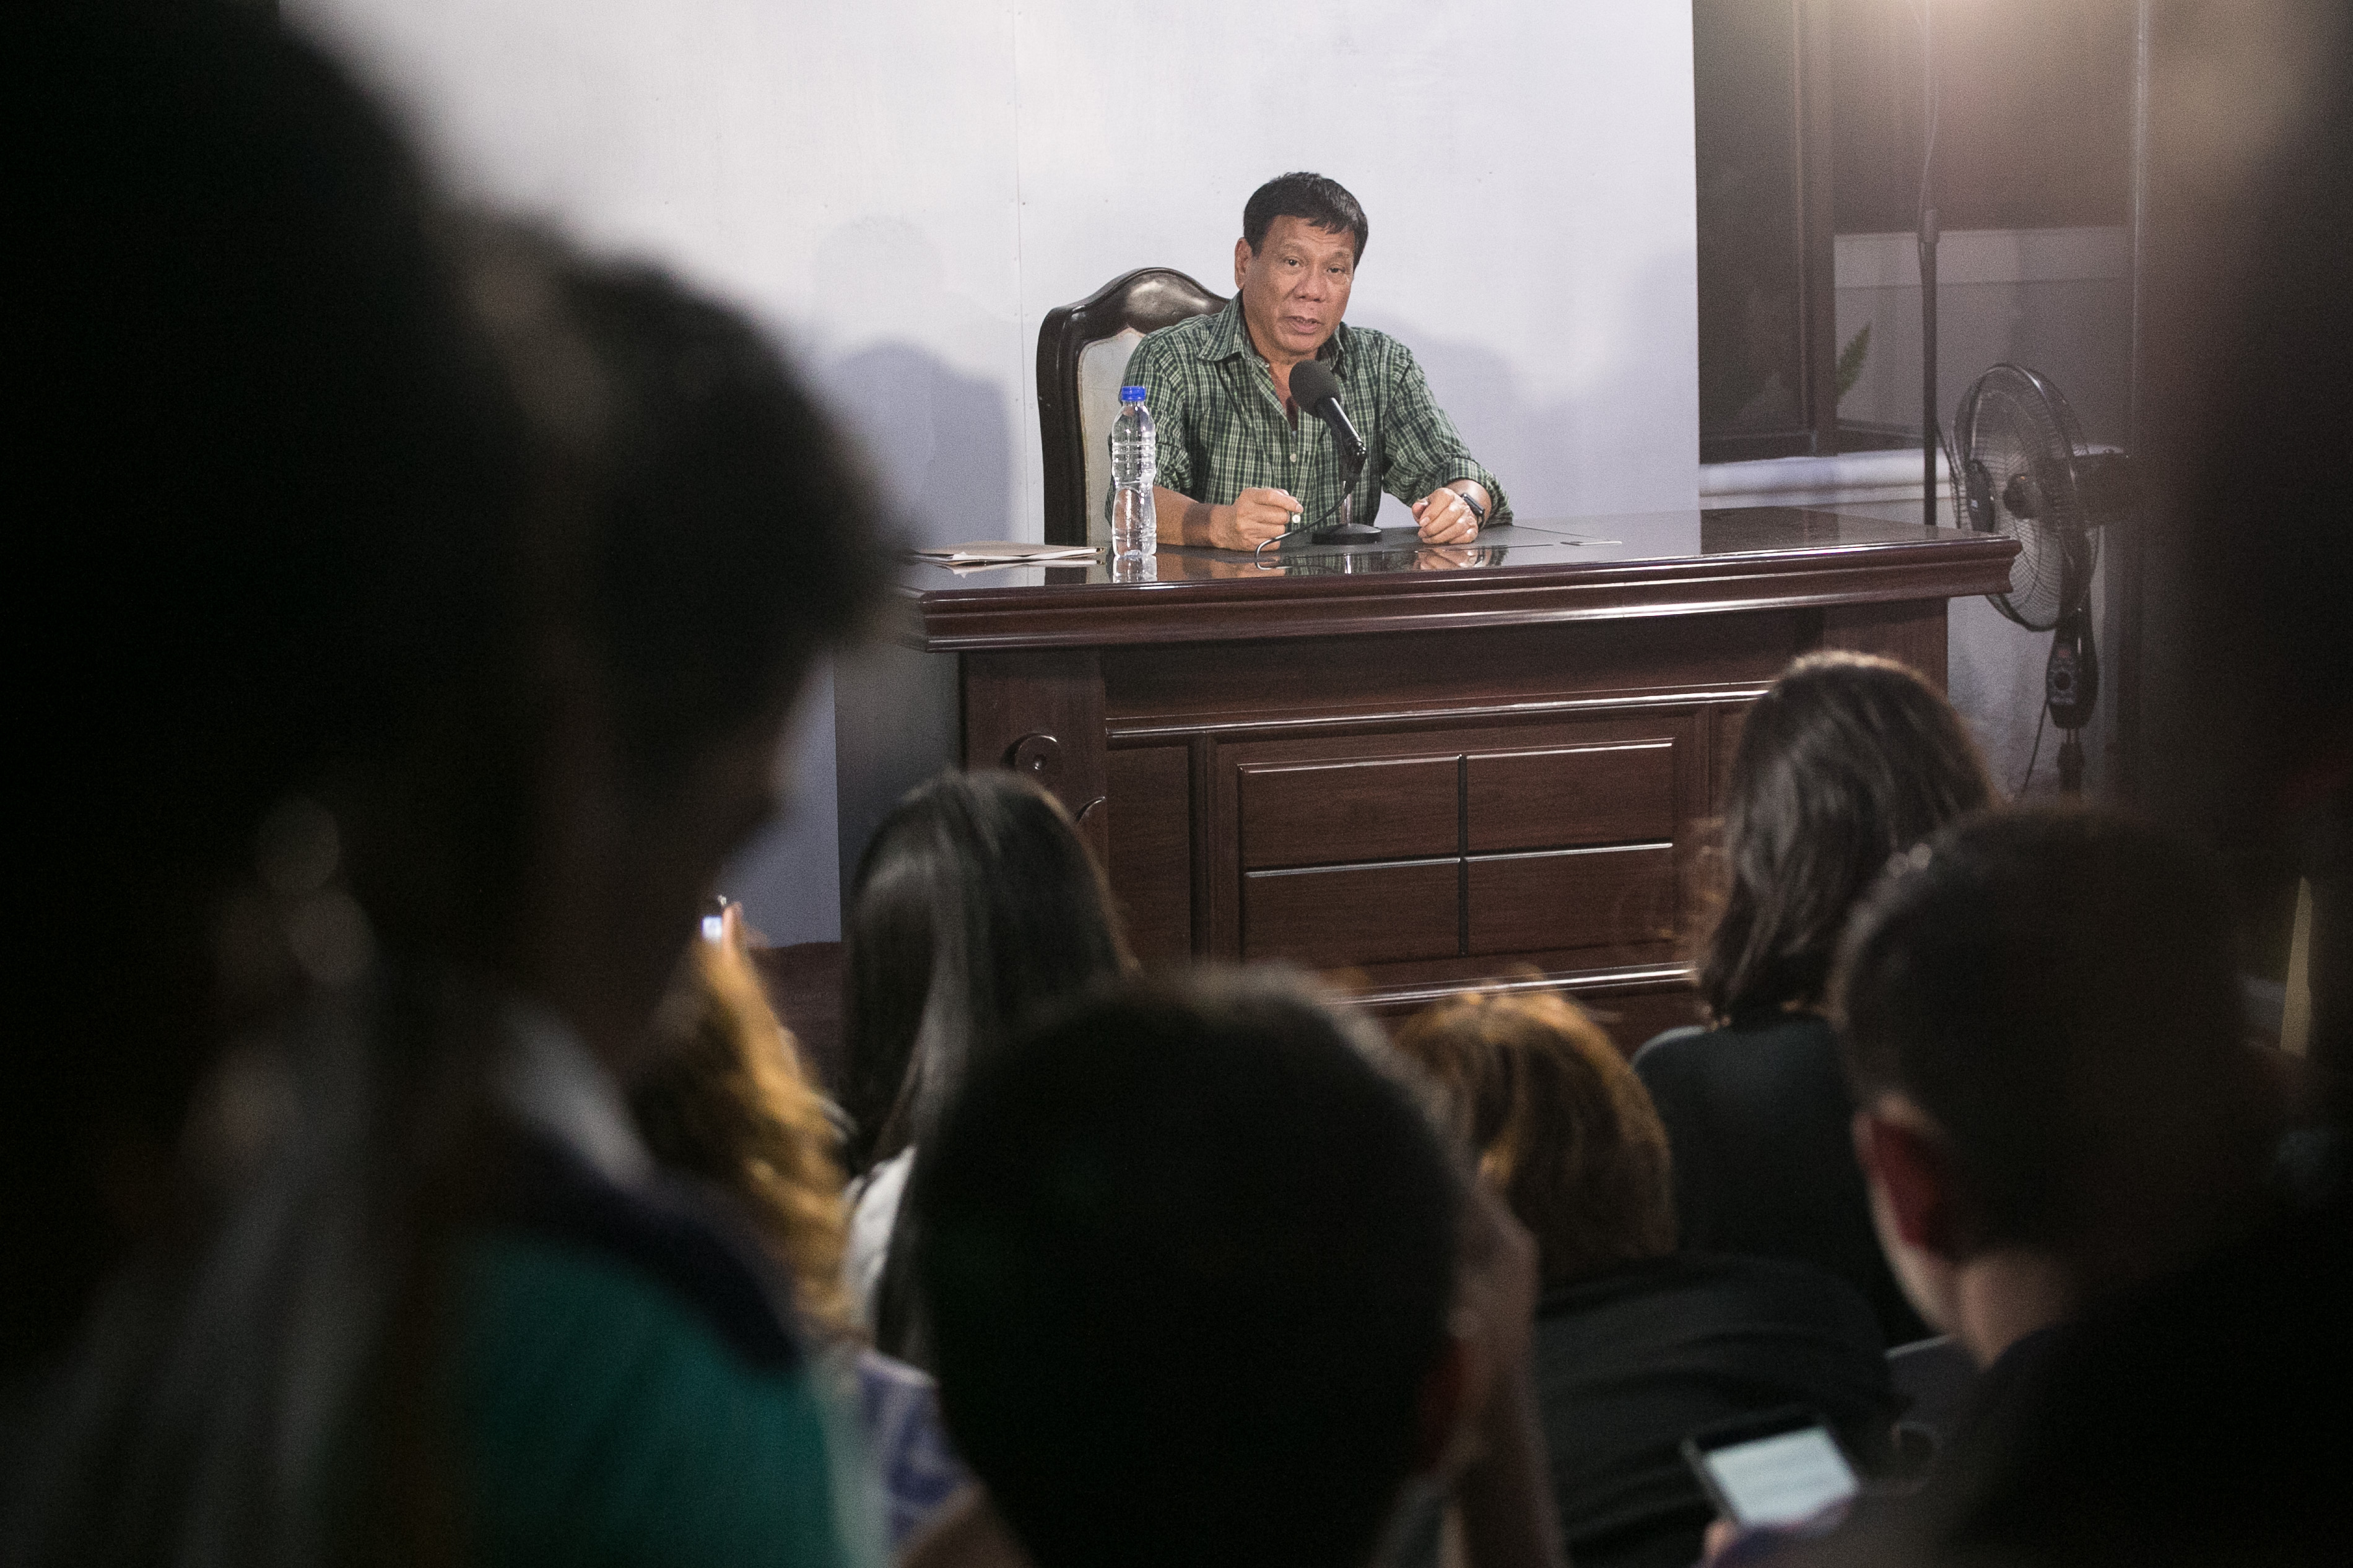 Catcalling: Duterte broke the law in own city